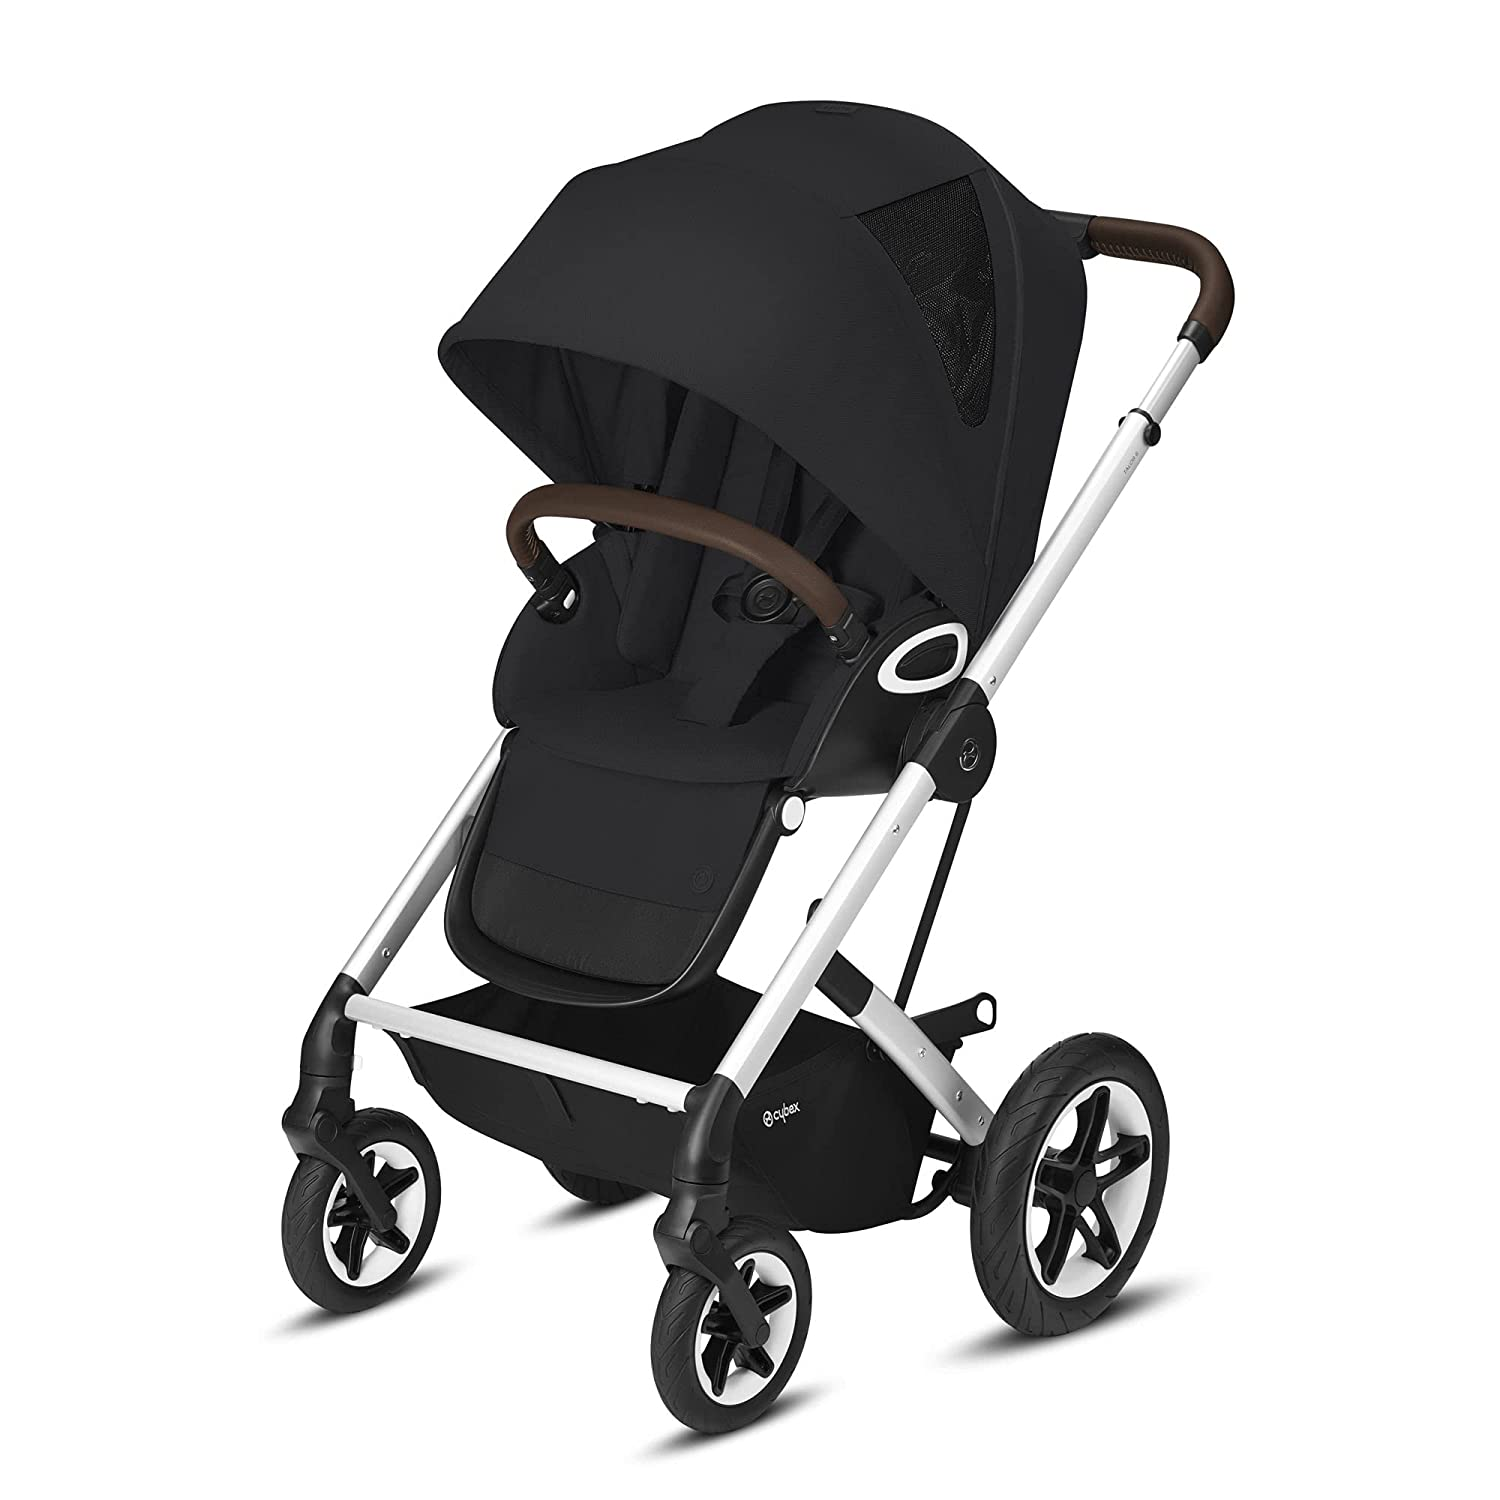 Cybex Talos S Lux Stroller, AllTerrain Wheels, FrontFacing or ParentFacing Seat Positions, OneHand Fold, Multiposition Recline, Deep Black